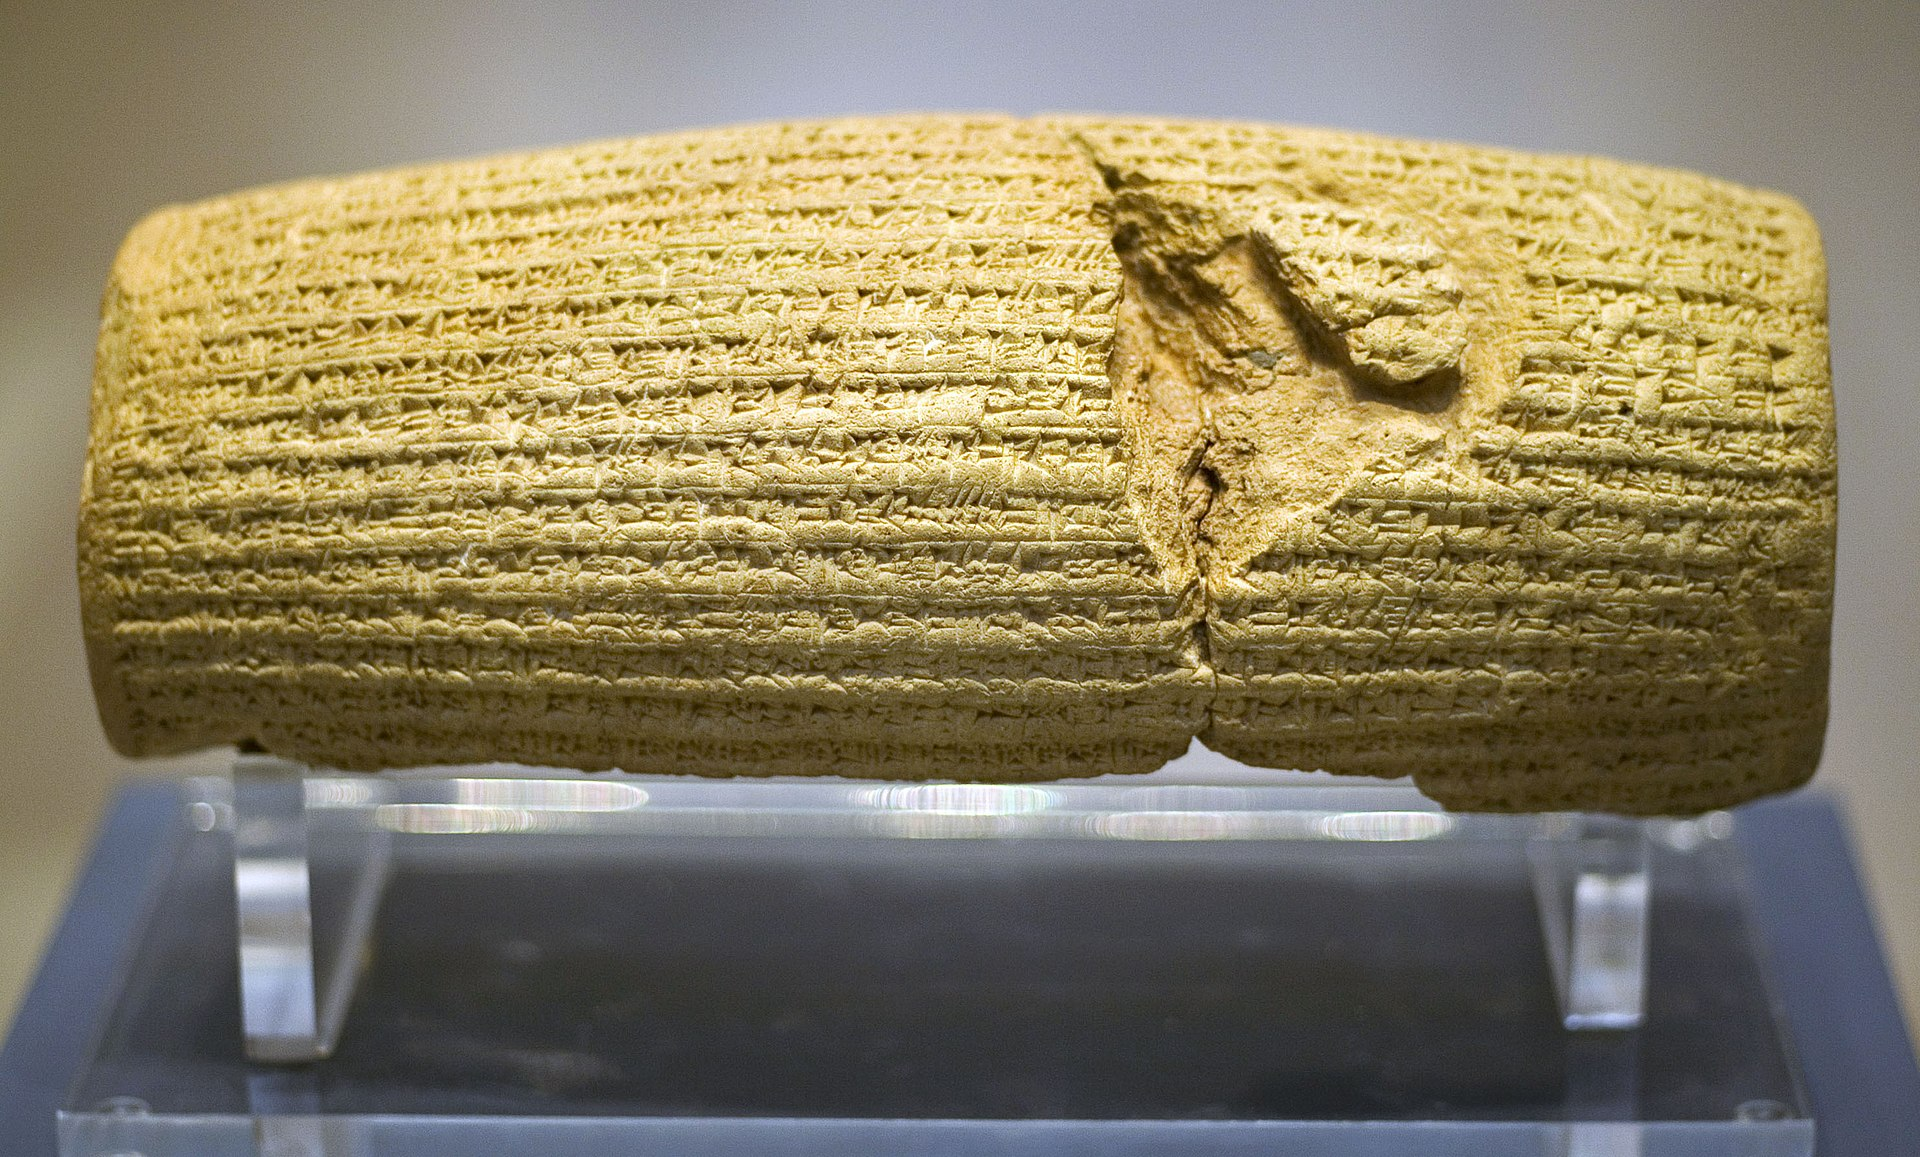 Front view of a barrel-shaped clay cylinder resting on a stand. The cylinder is covered with lines of cuneiform text